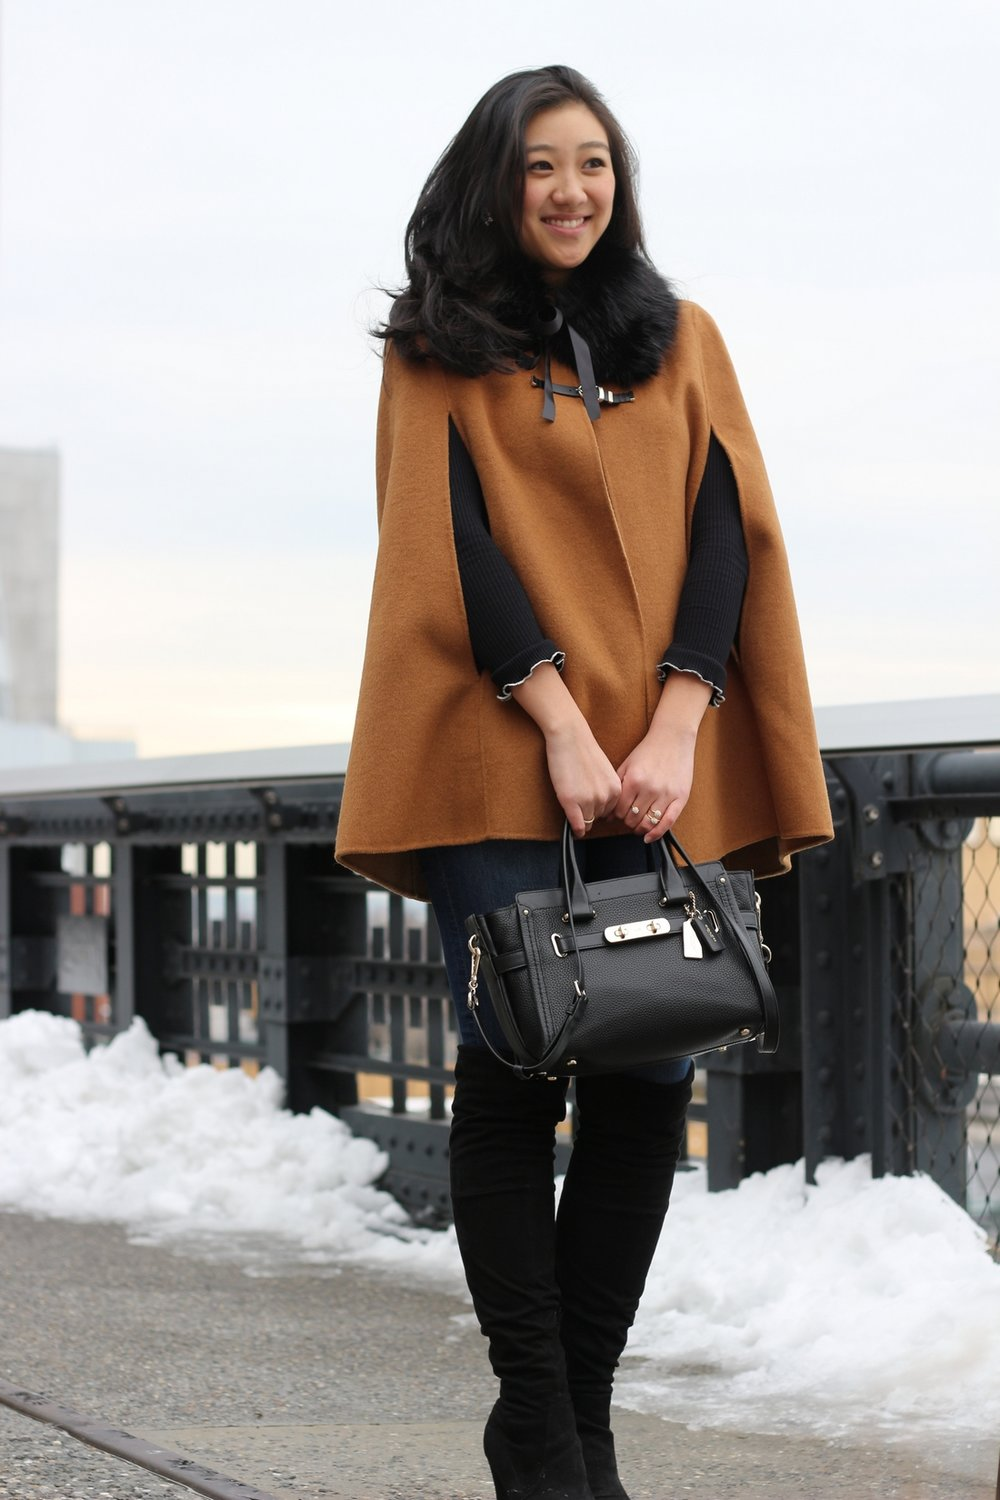 Bag:  Coach Swagger  | Cape: sold out but similar  here  and  here  | Boots:  Stuart Weitzman  | Jeans:  H&M